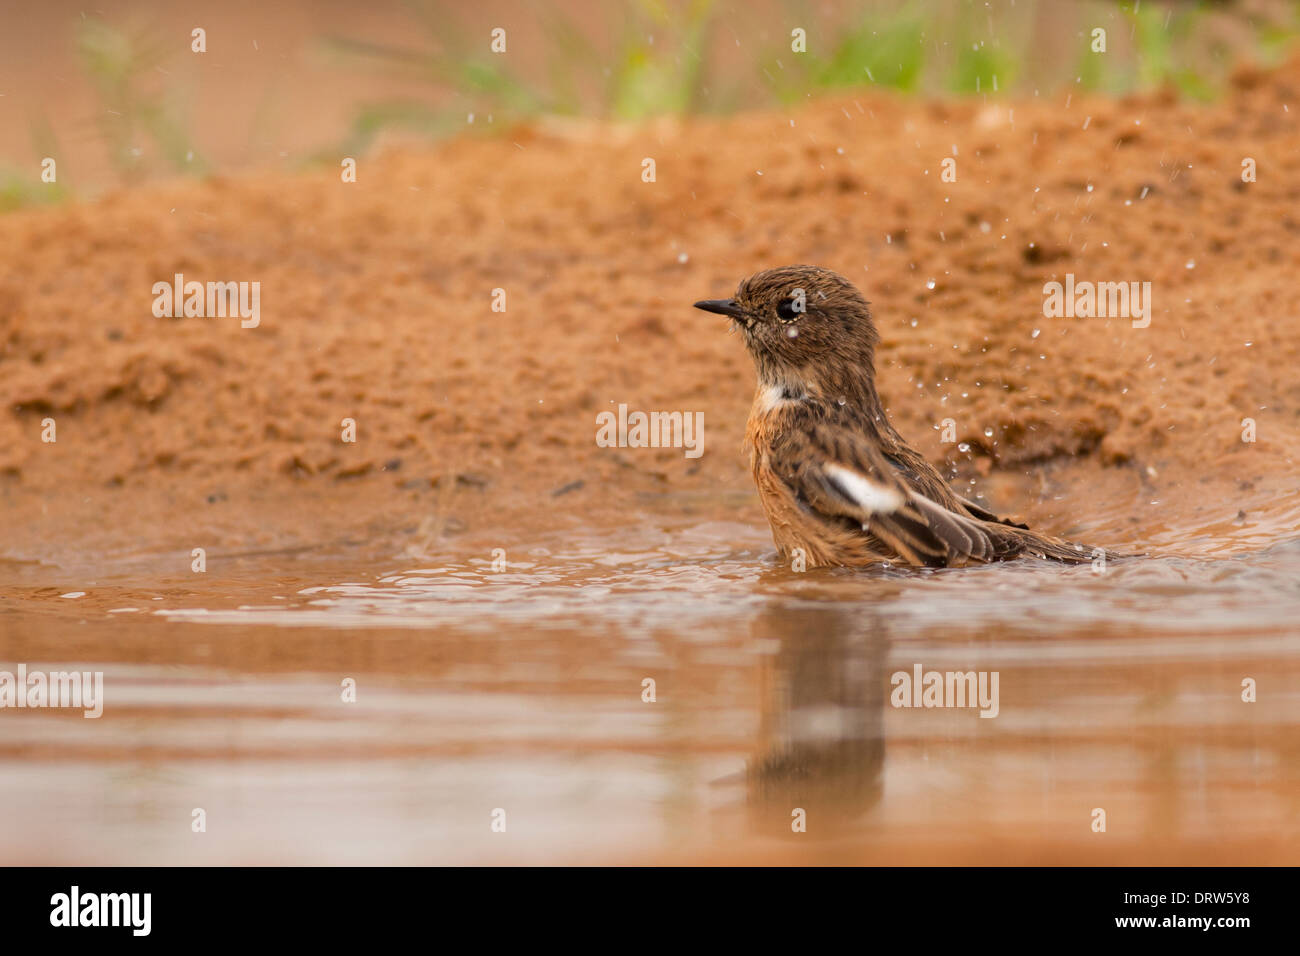 Whinchat (Saxicola rubetra) a small migratory passerine bird that breeds in Europe and western Asia - Stock Image